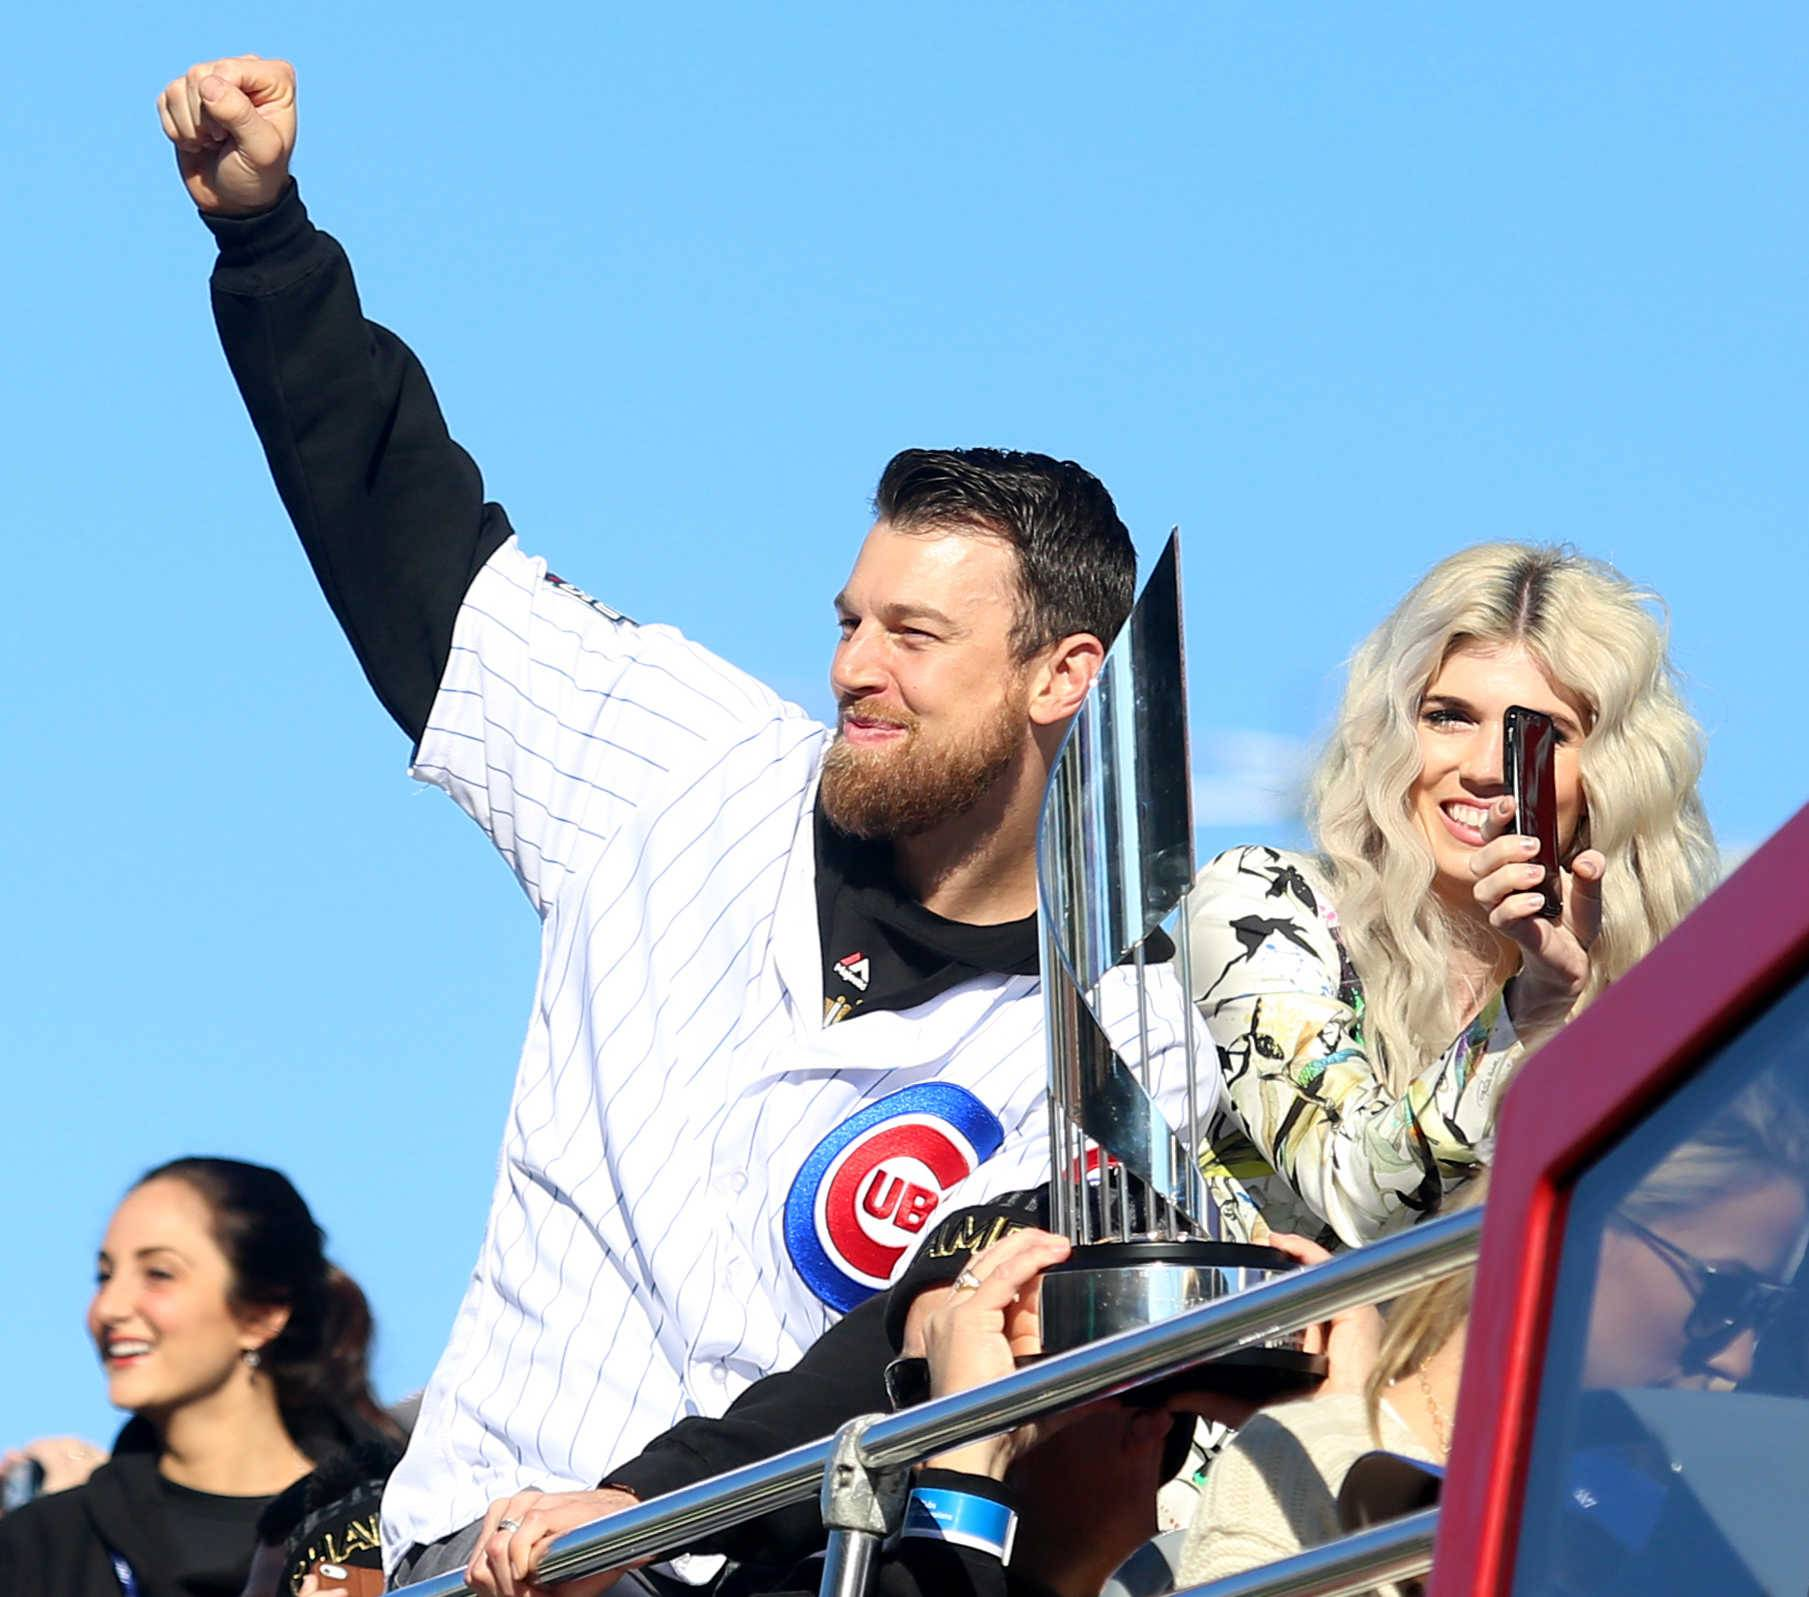 Cubs World Series MVP Ben Zobrist, who has been on personal leave from the team since last week, and his wife Julianna, filed for divorce Monday in Cook County circuit court.